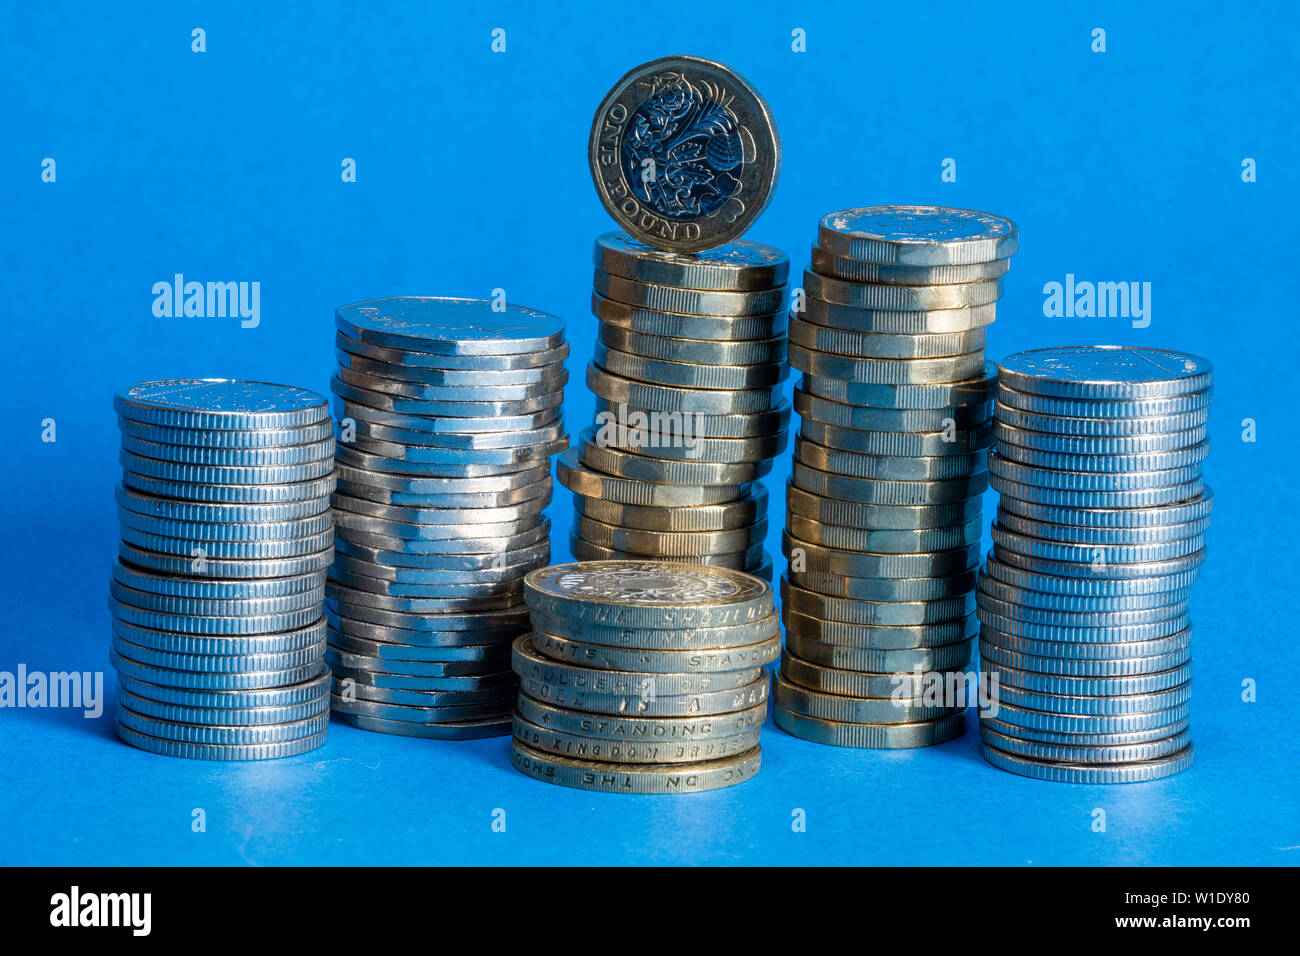 English Currency Stacks of Coins - Stock Image